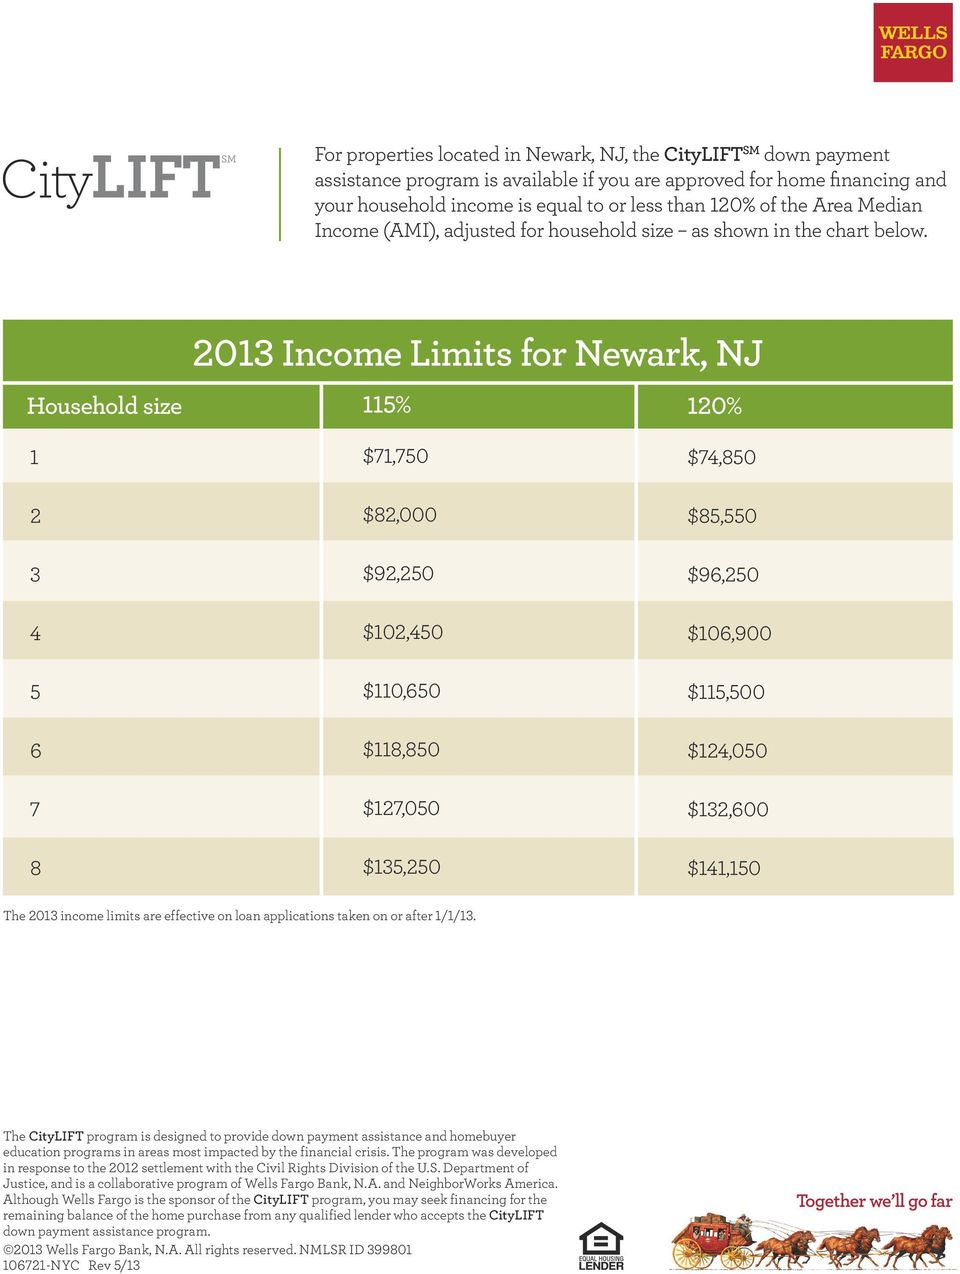 Household size 2013 Income Limits for Newark, NJ 1 $71,750 $74,850 2 $82,000 $85,550 3 $92,250 $96,250 4 $102,450 $106,900 5 $110,650 $115,500 6 $118,850 $124,050 7 $127,050 $132,600 8 $135,250